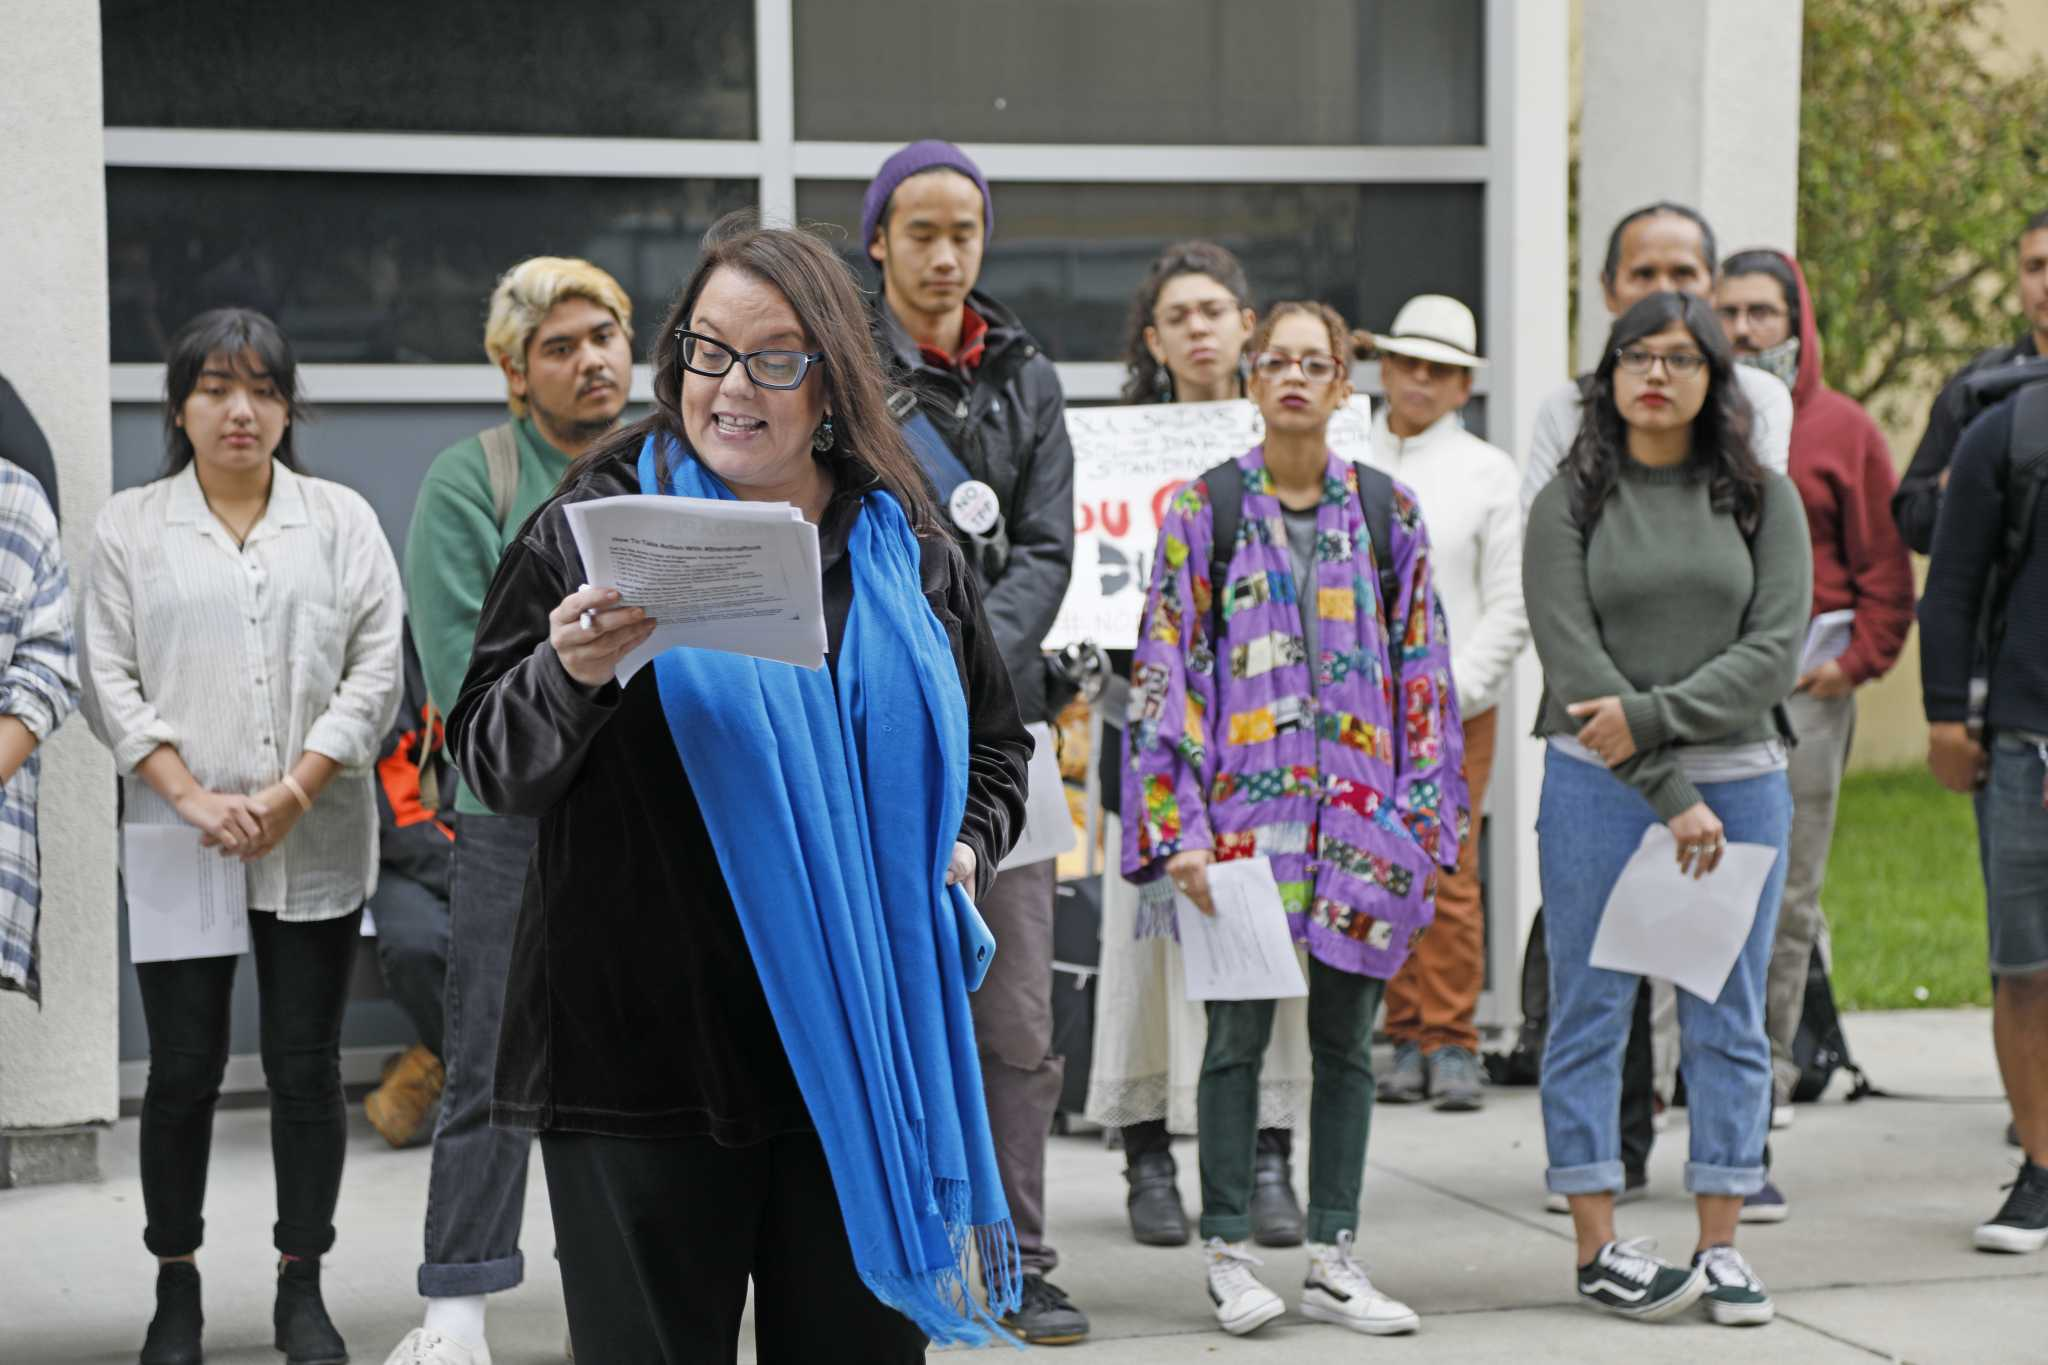 Joanne Barker, a member of the Lenape Nation and an American Indian studies professor begins the teach-in of the North Dakota Access Pipeline in front of the Ethnic Studies and Psychology buildings on Thursday, Sept. 15, 2016. Barker began with an introduction about the harm of polluted water resources and climate change. (Steven Ho/Xpress)